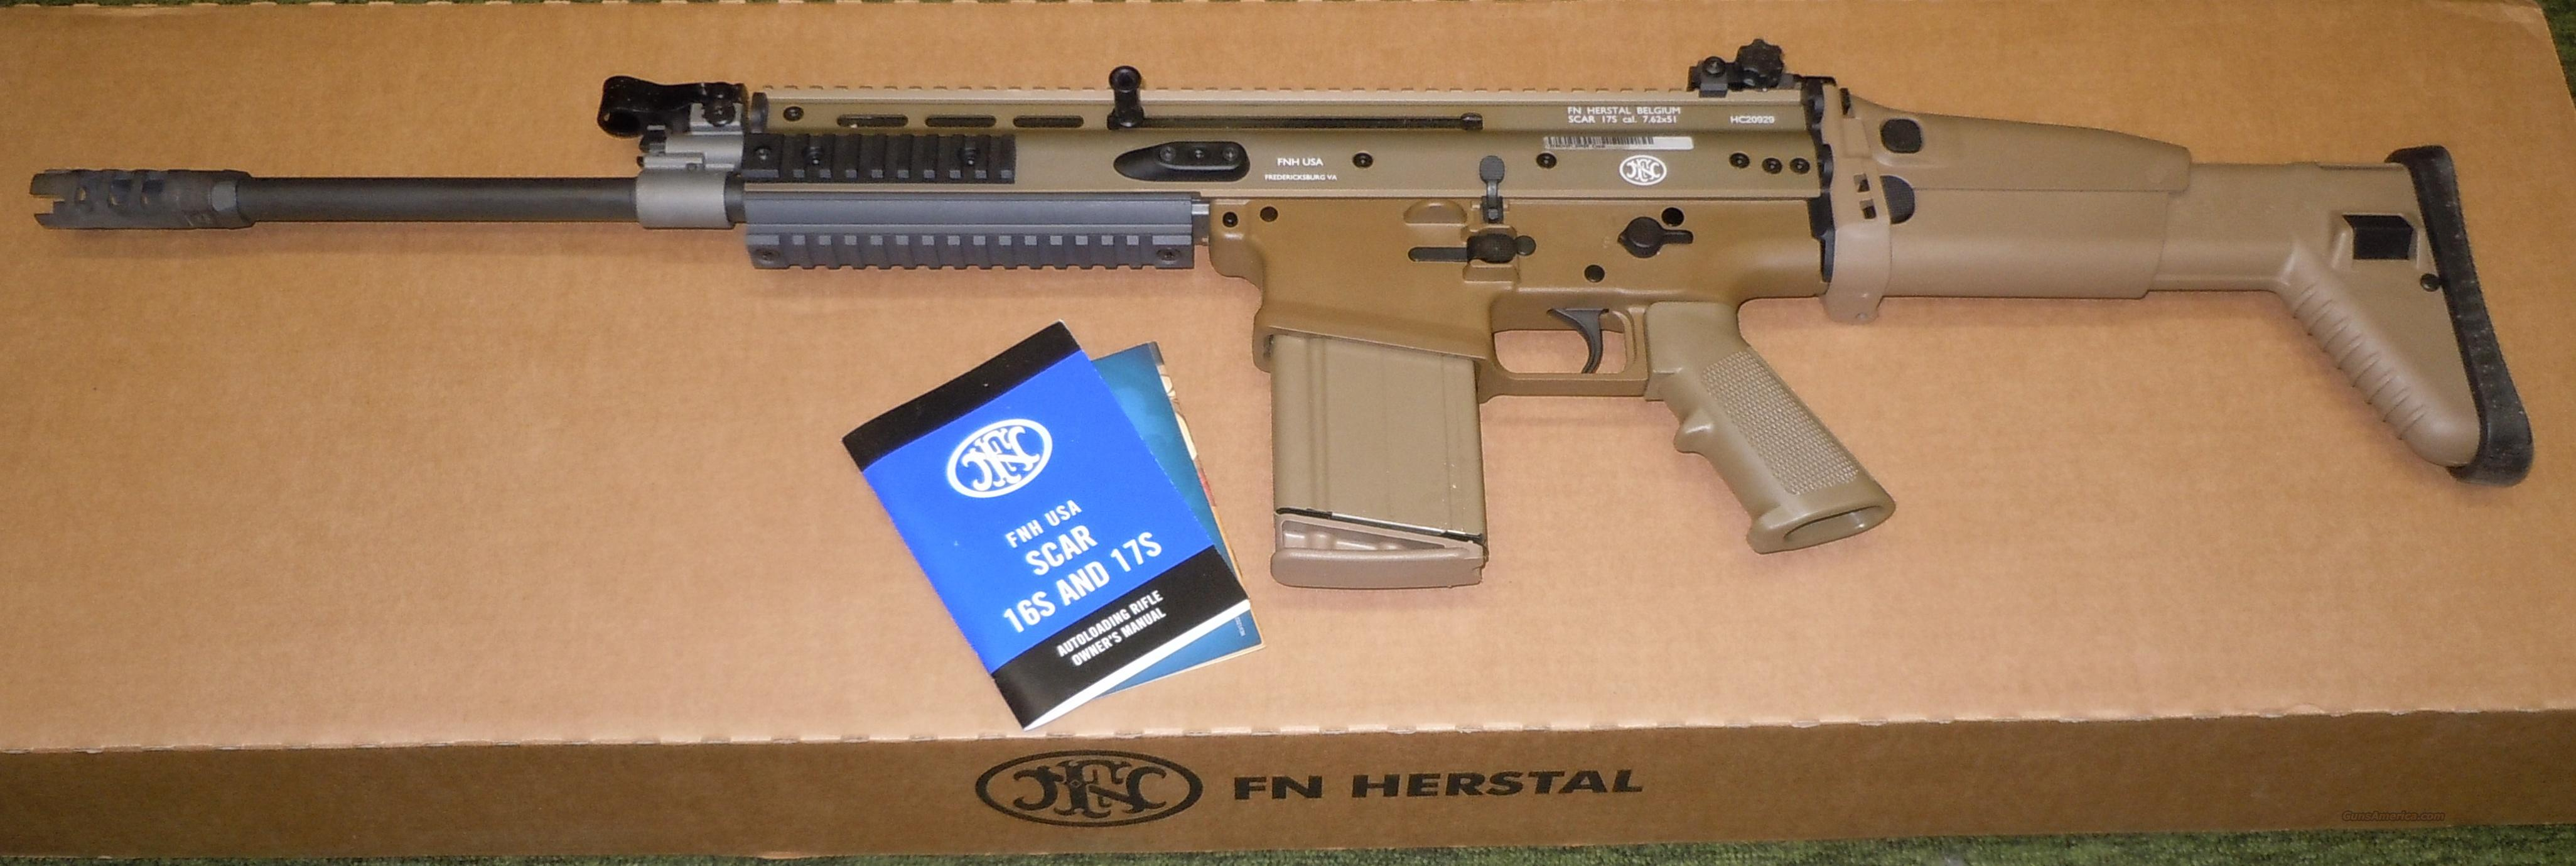 FNH SCAR 17S FDE 7.62x51 NATO (308WIN) DARK EARTH RIFLE  Guns > Rifles > FNH - Fabrique Nationale (FN) Rifles > Semi-auto > Other